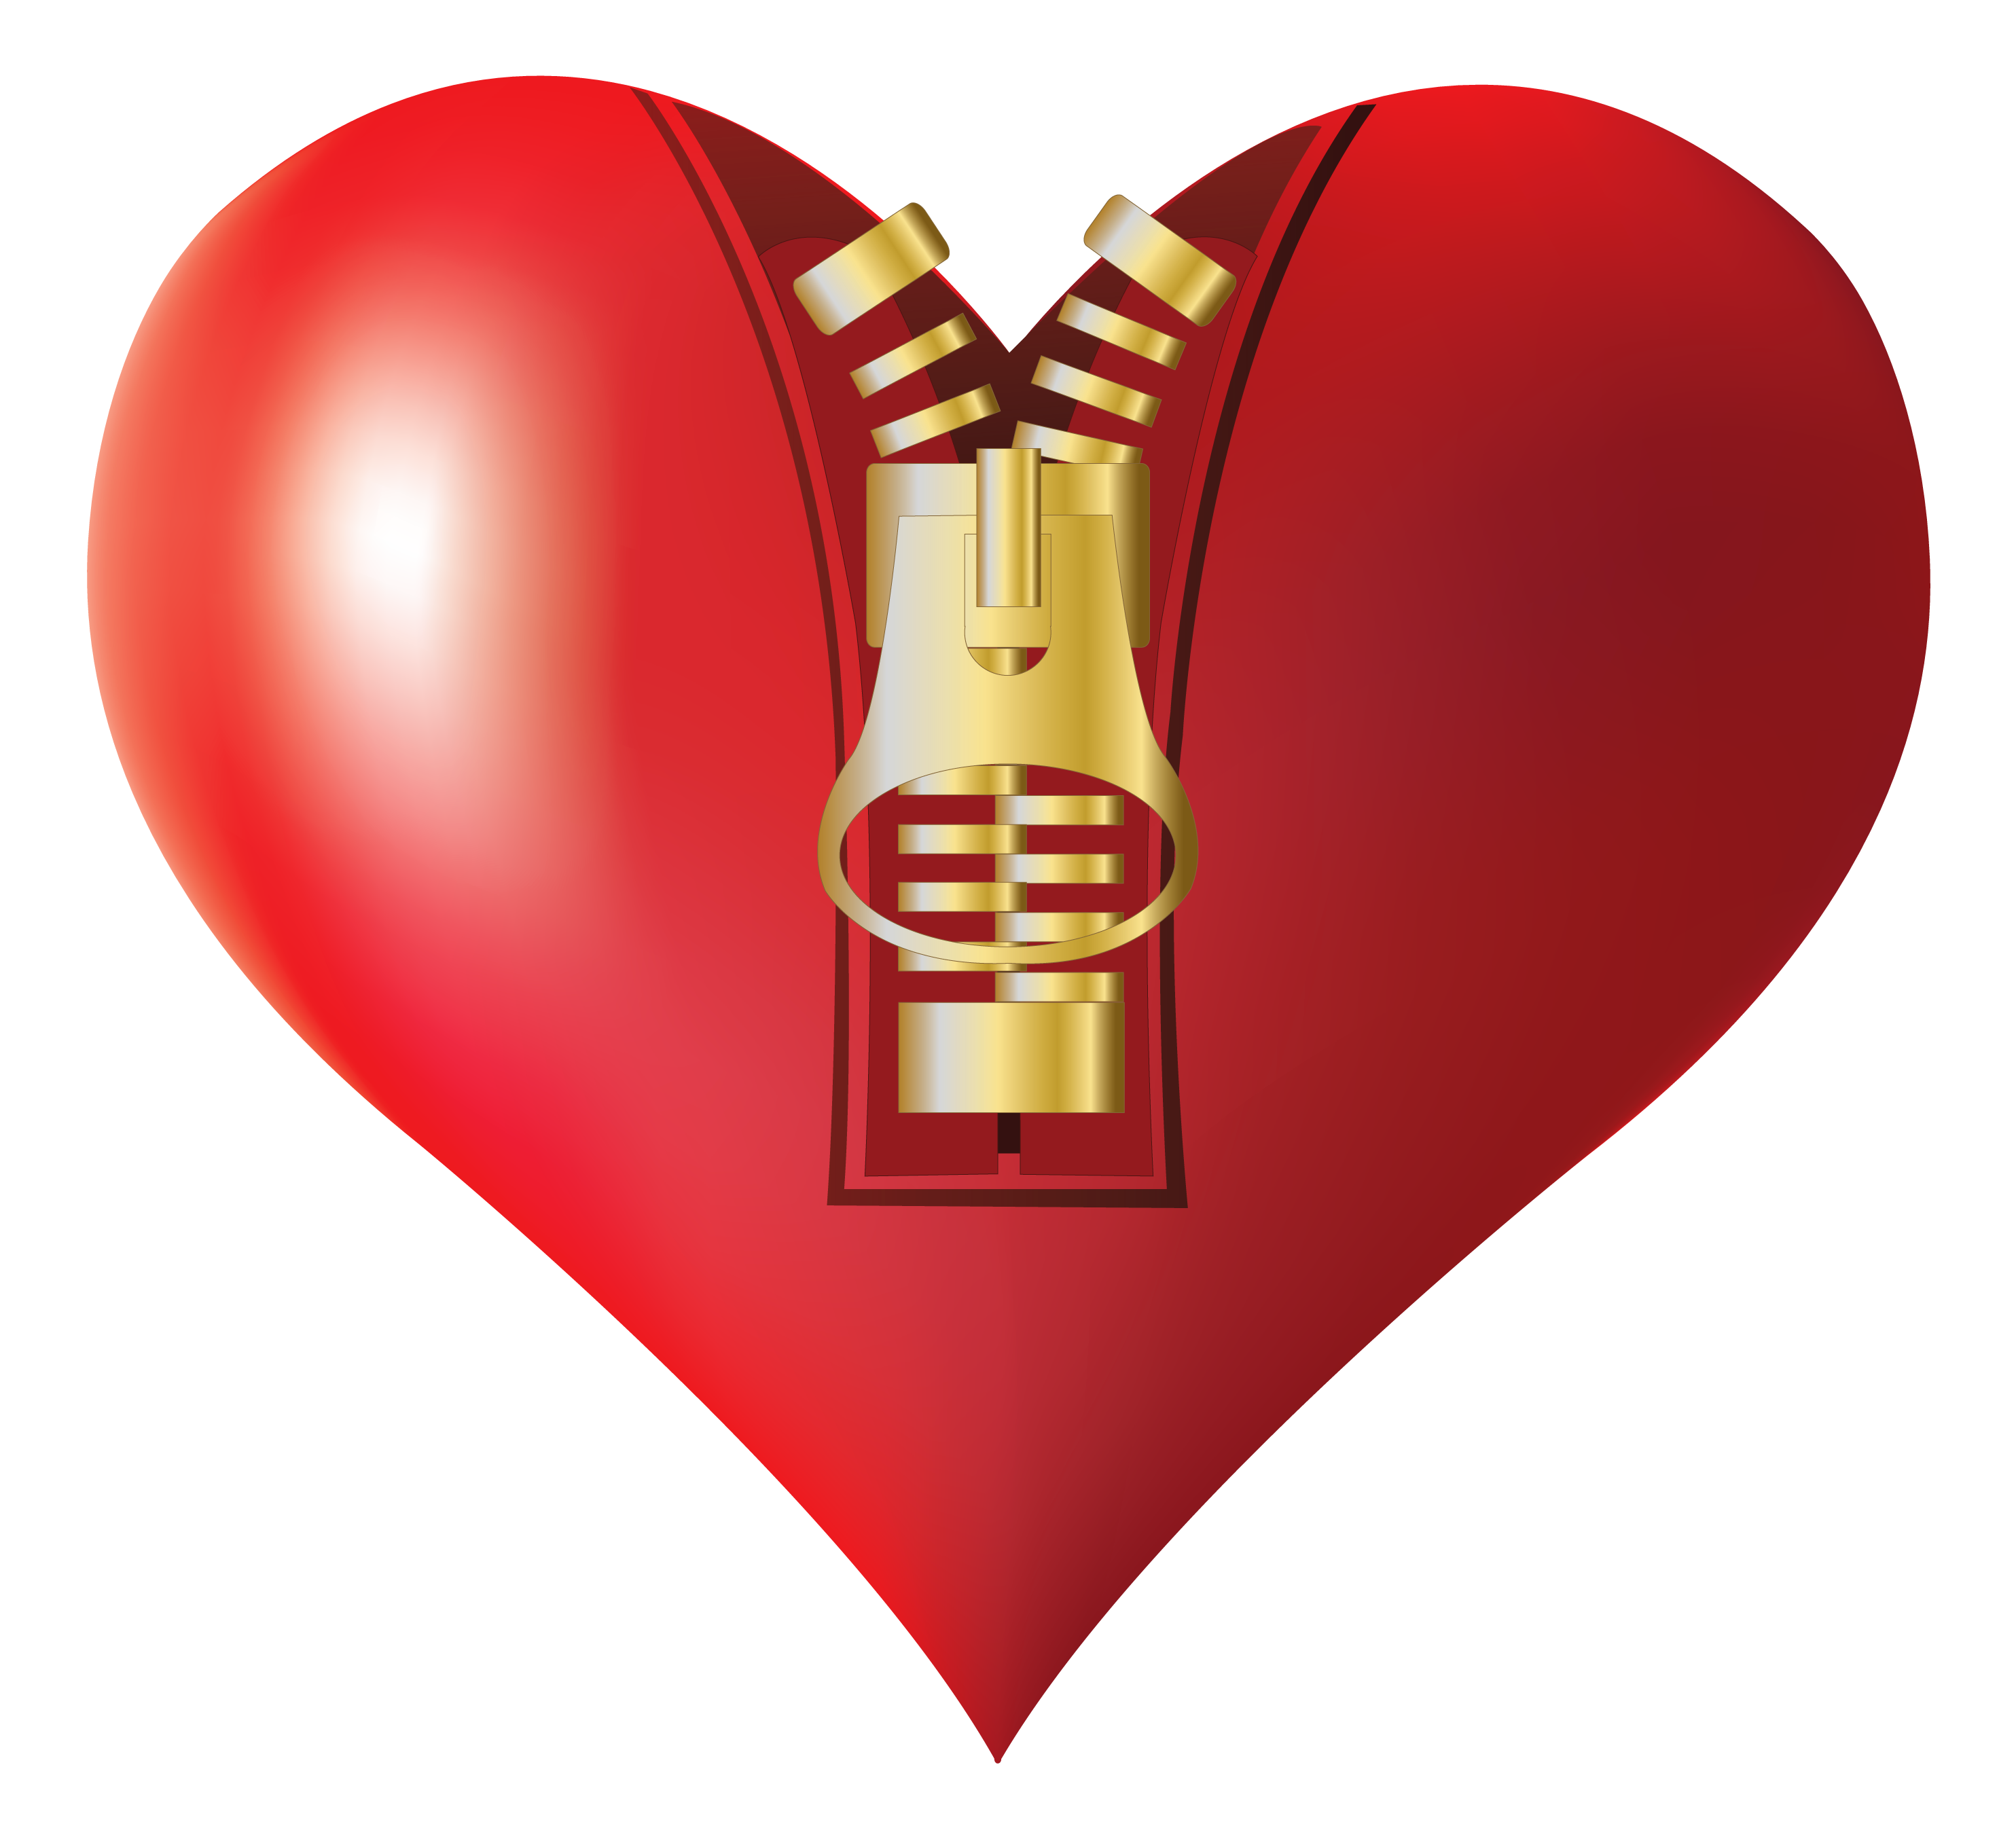 Zipped heart png image. Clipart hearts halloween